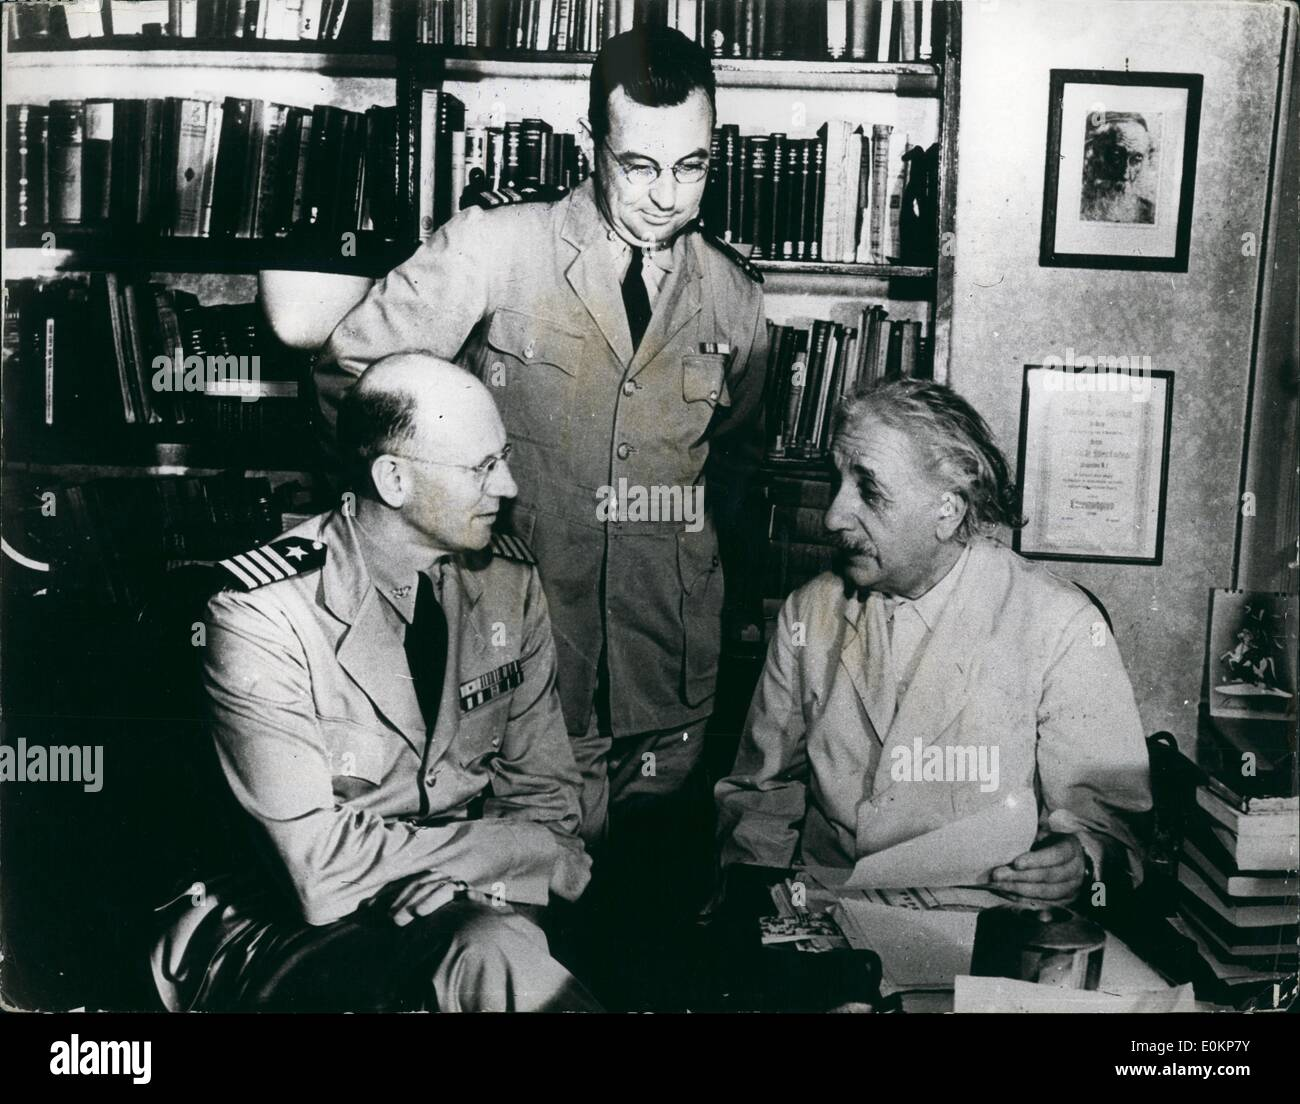 Oct. 10, 1943 - Falcous scientist now works for uncle sa passed by censor: Dr. Albert Einstein., German refugee and one of the world's most famous scientists, founder of the theory or relativity, is now refusing research work for the U.S.Navy. Photo shows L to R captain G.E.Sage, U.S.N. commanding officer of the U.S. Naval training school at Princeton, N.J. and Lt. commander F.L.Douthit, usher, executive officer of the school, pay a visit to the famous scientist, prof.Einstein, in his study at Princeton university. - Stock Image